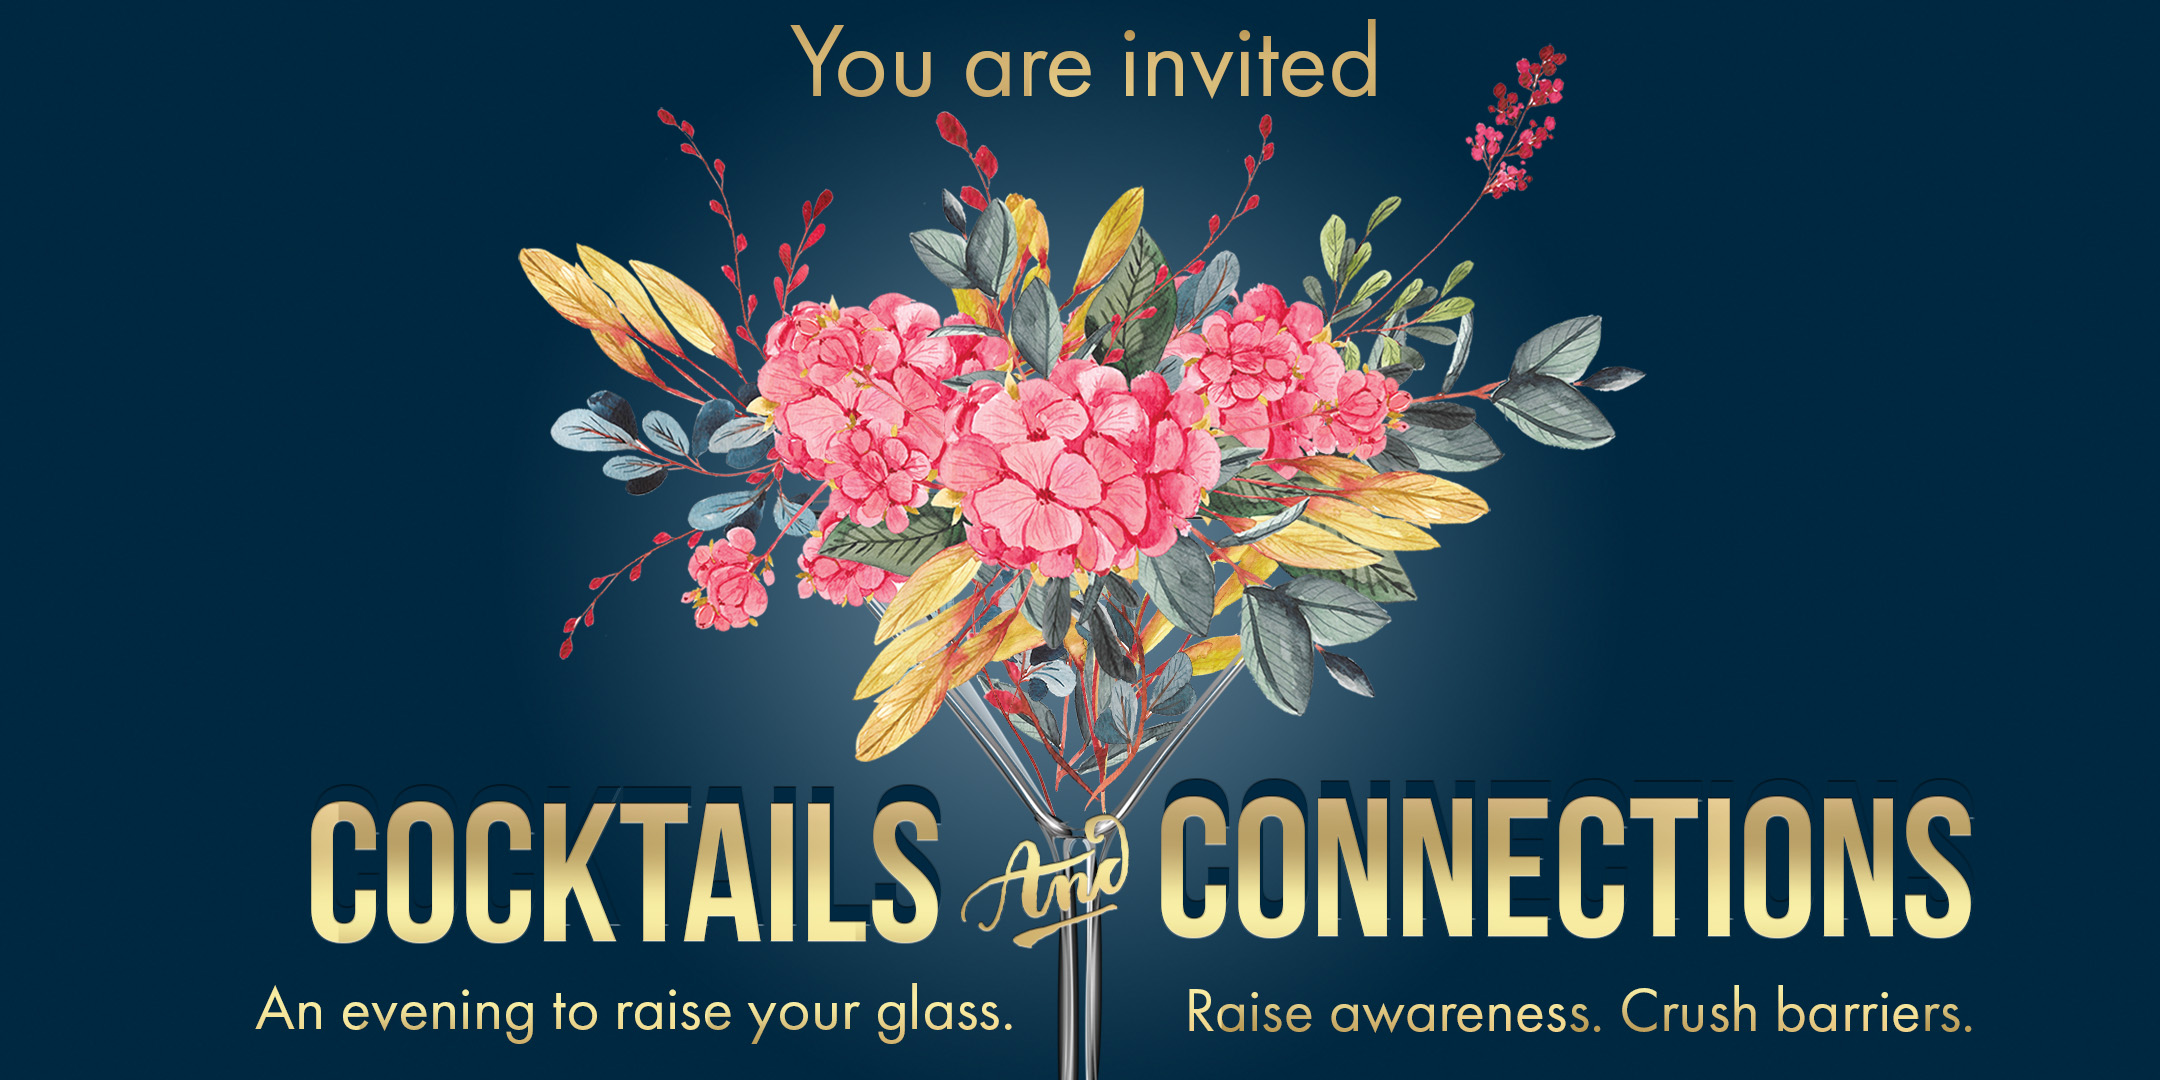 You are invited to Cocktails & Connections 2020. Raise your glass. Raise awareness. Crush barriers.